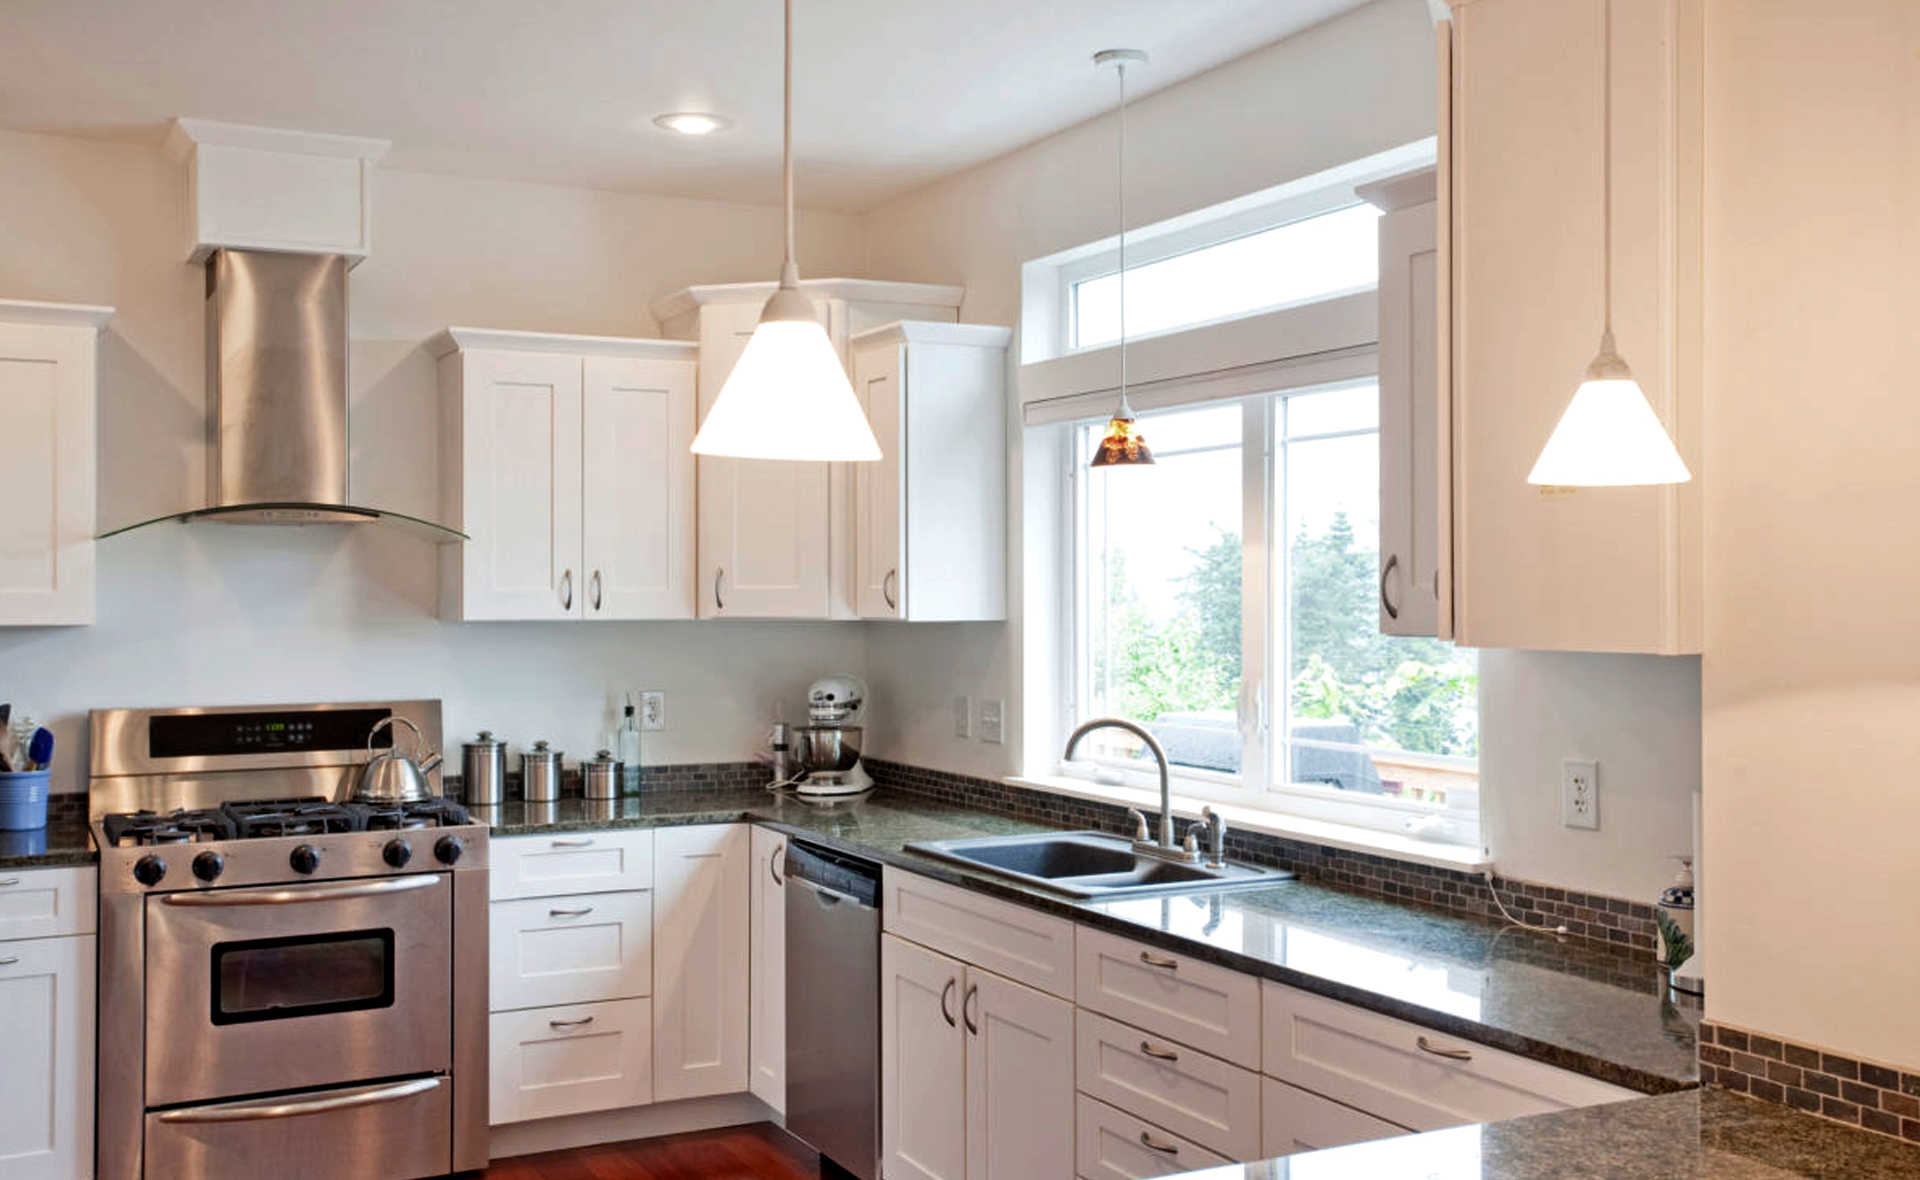 kitchen-renovations-in-bergen-county-nj